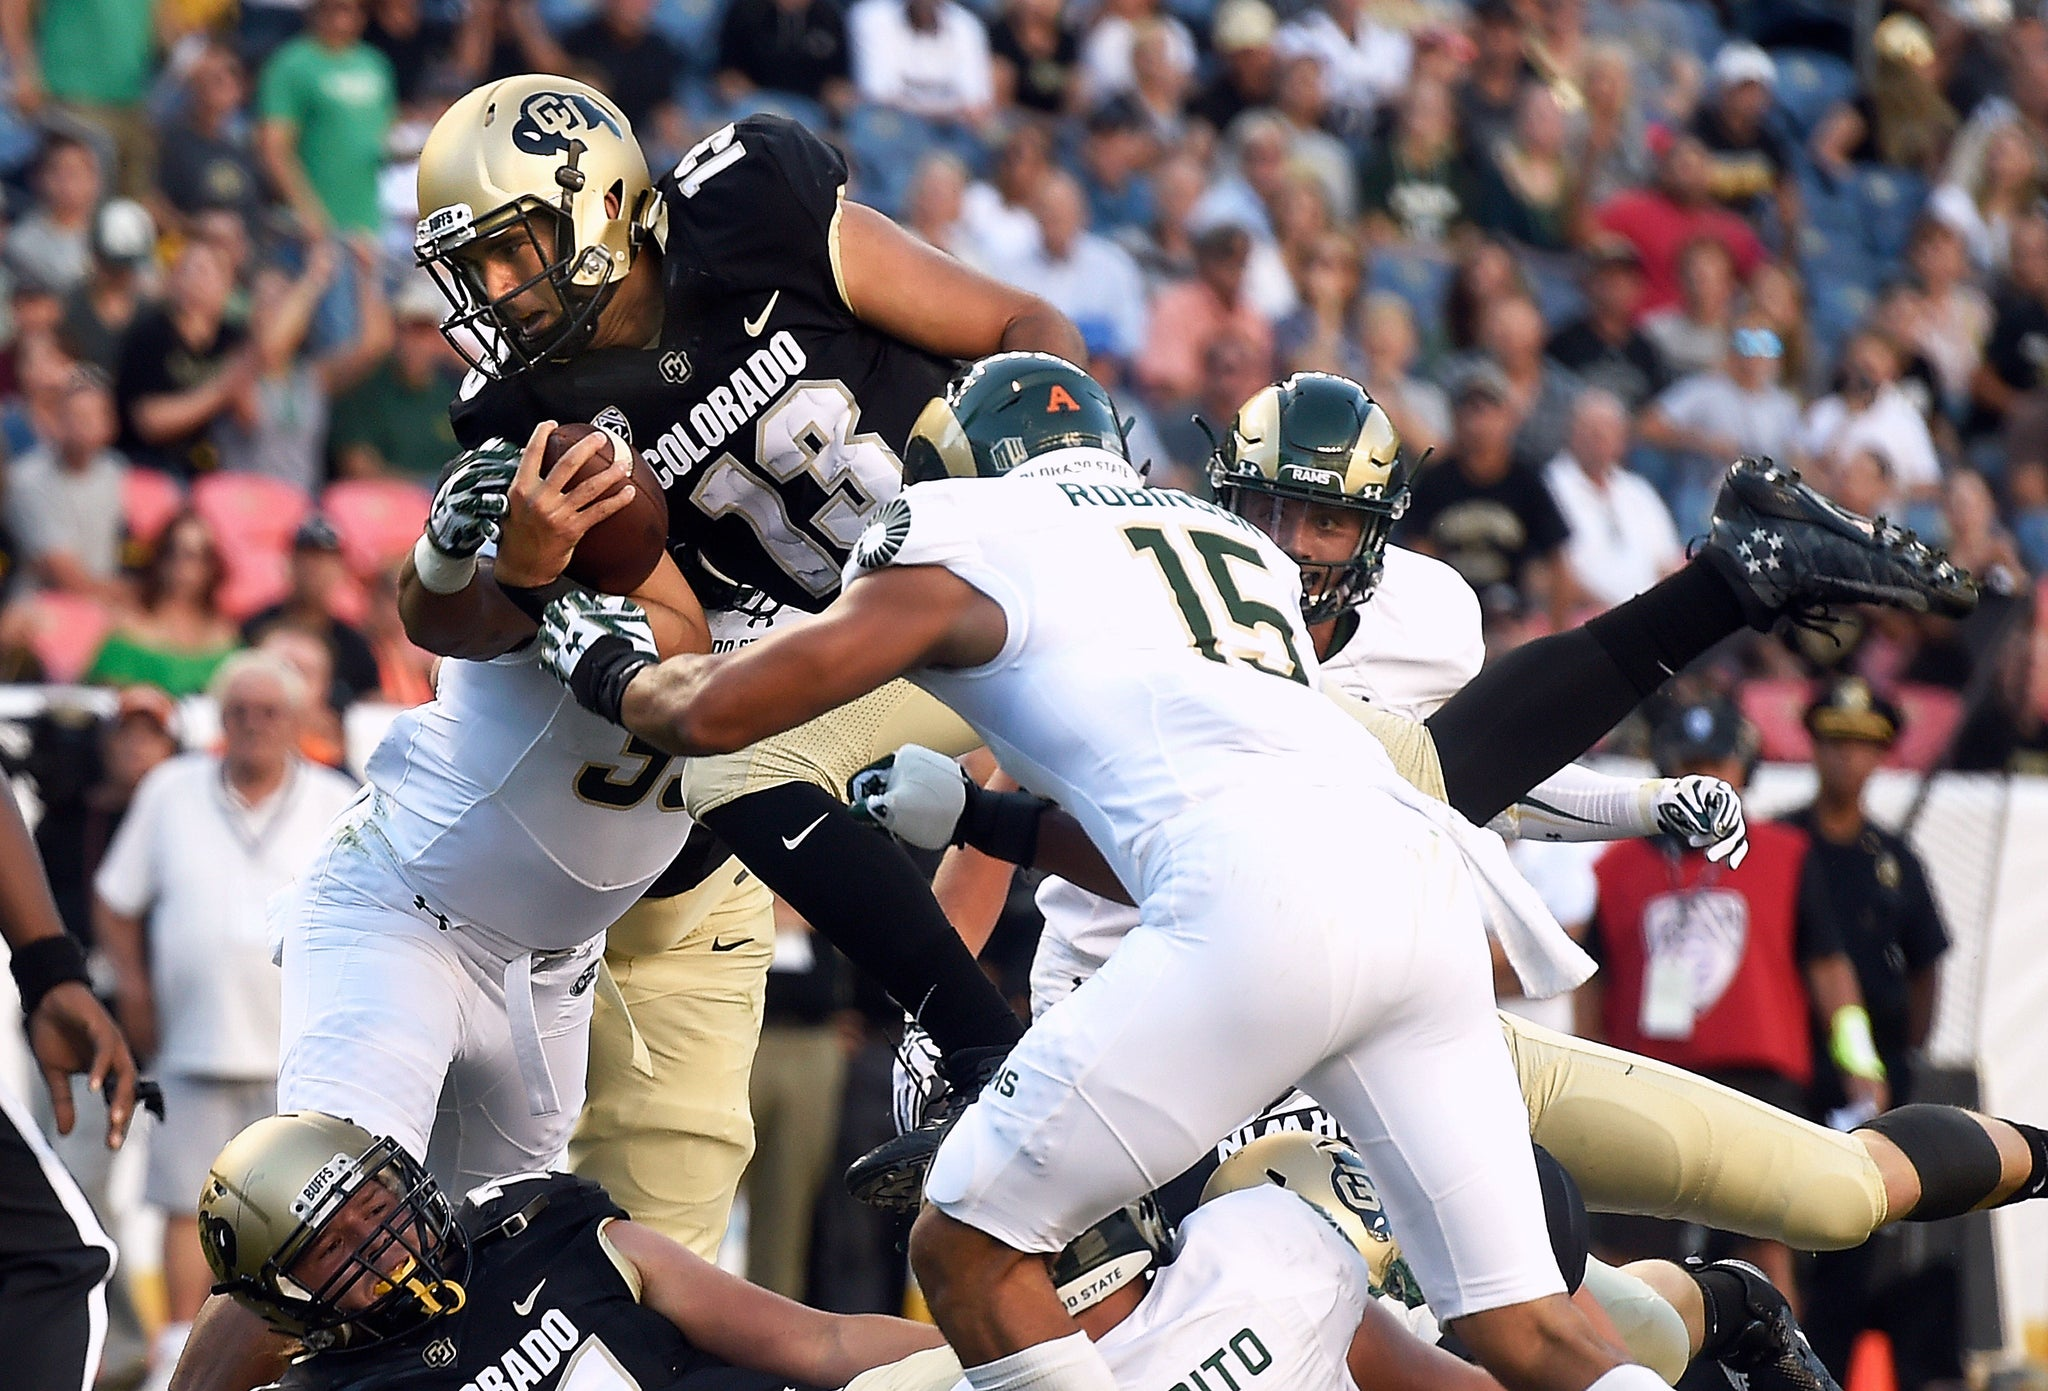 Colorado quarterback Sefo Liufau dives over the line of scrimmage for a touchdown in the first quarter. -- Jeremy Papasso